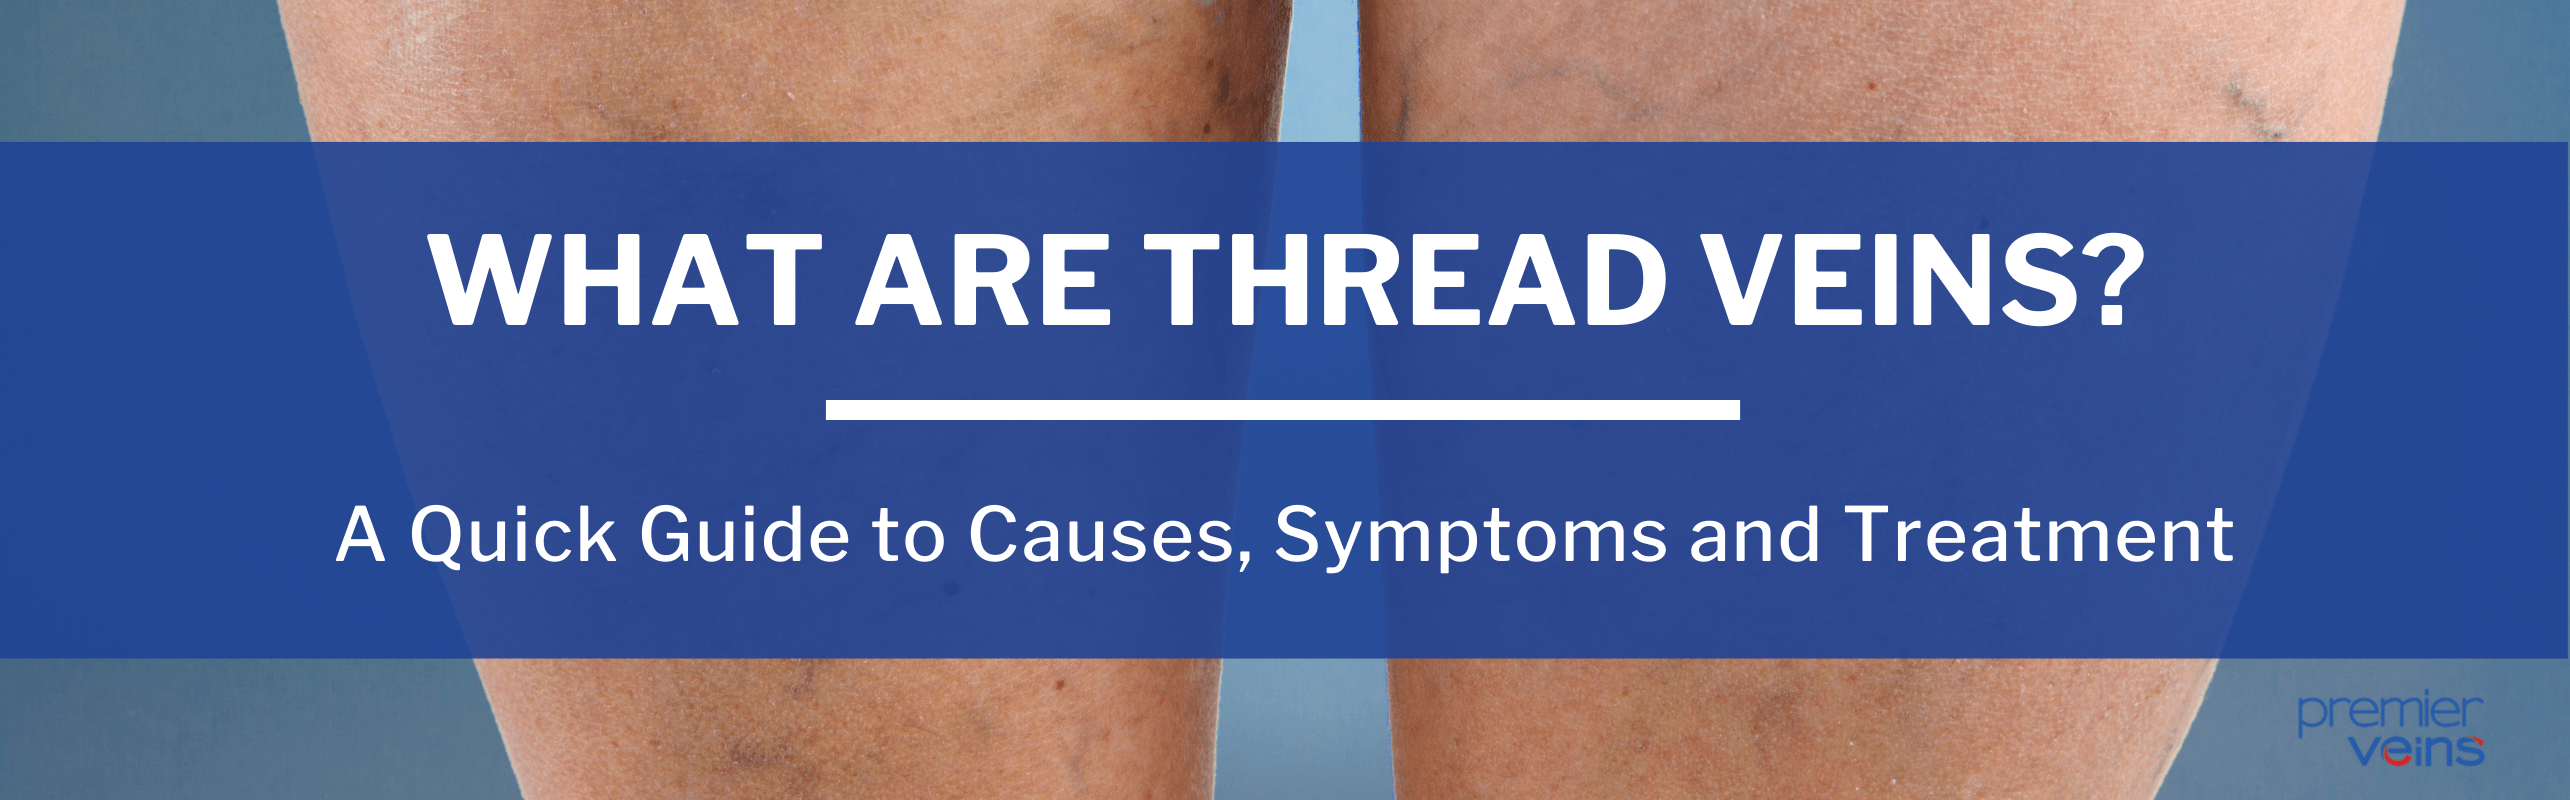 What Are Thread Veins?